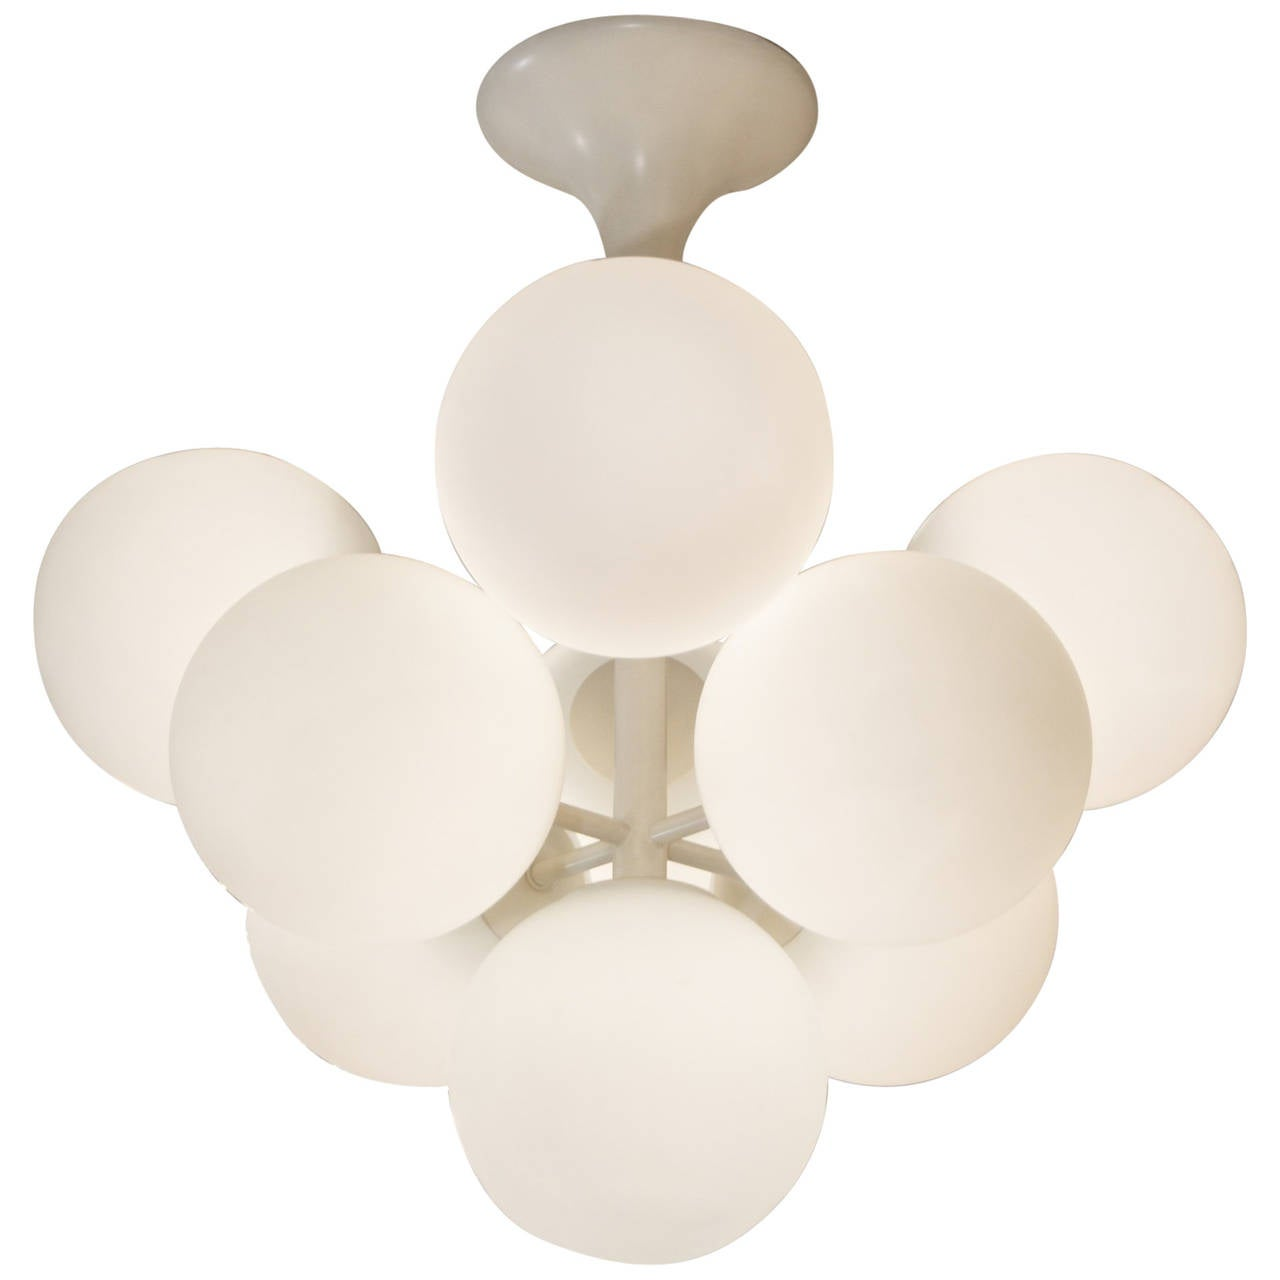 Temde Atomic Chandelier in White Enamel with Opal Globes For Sale